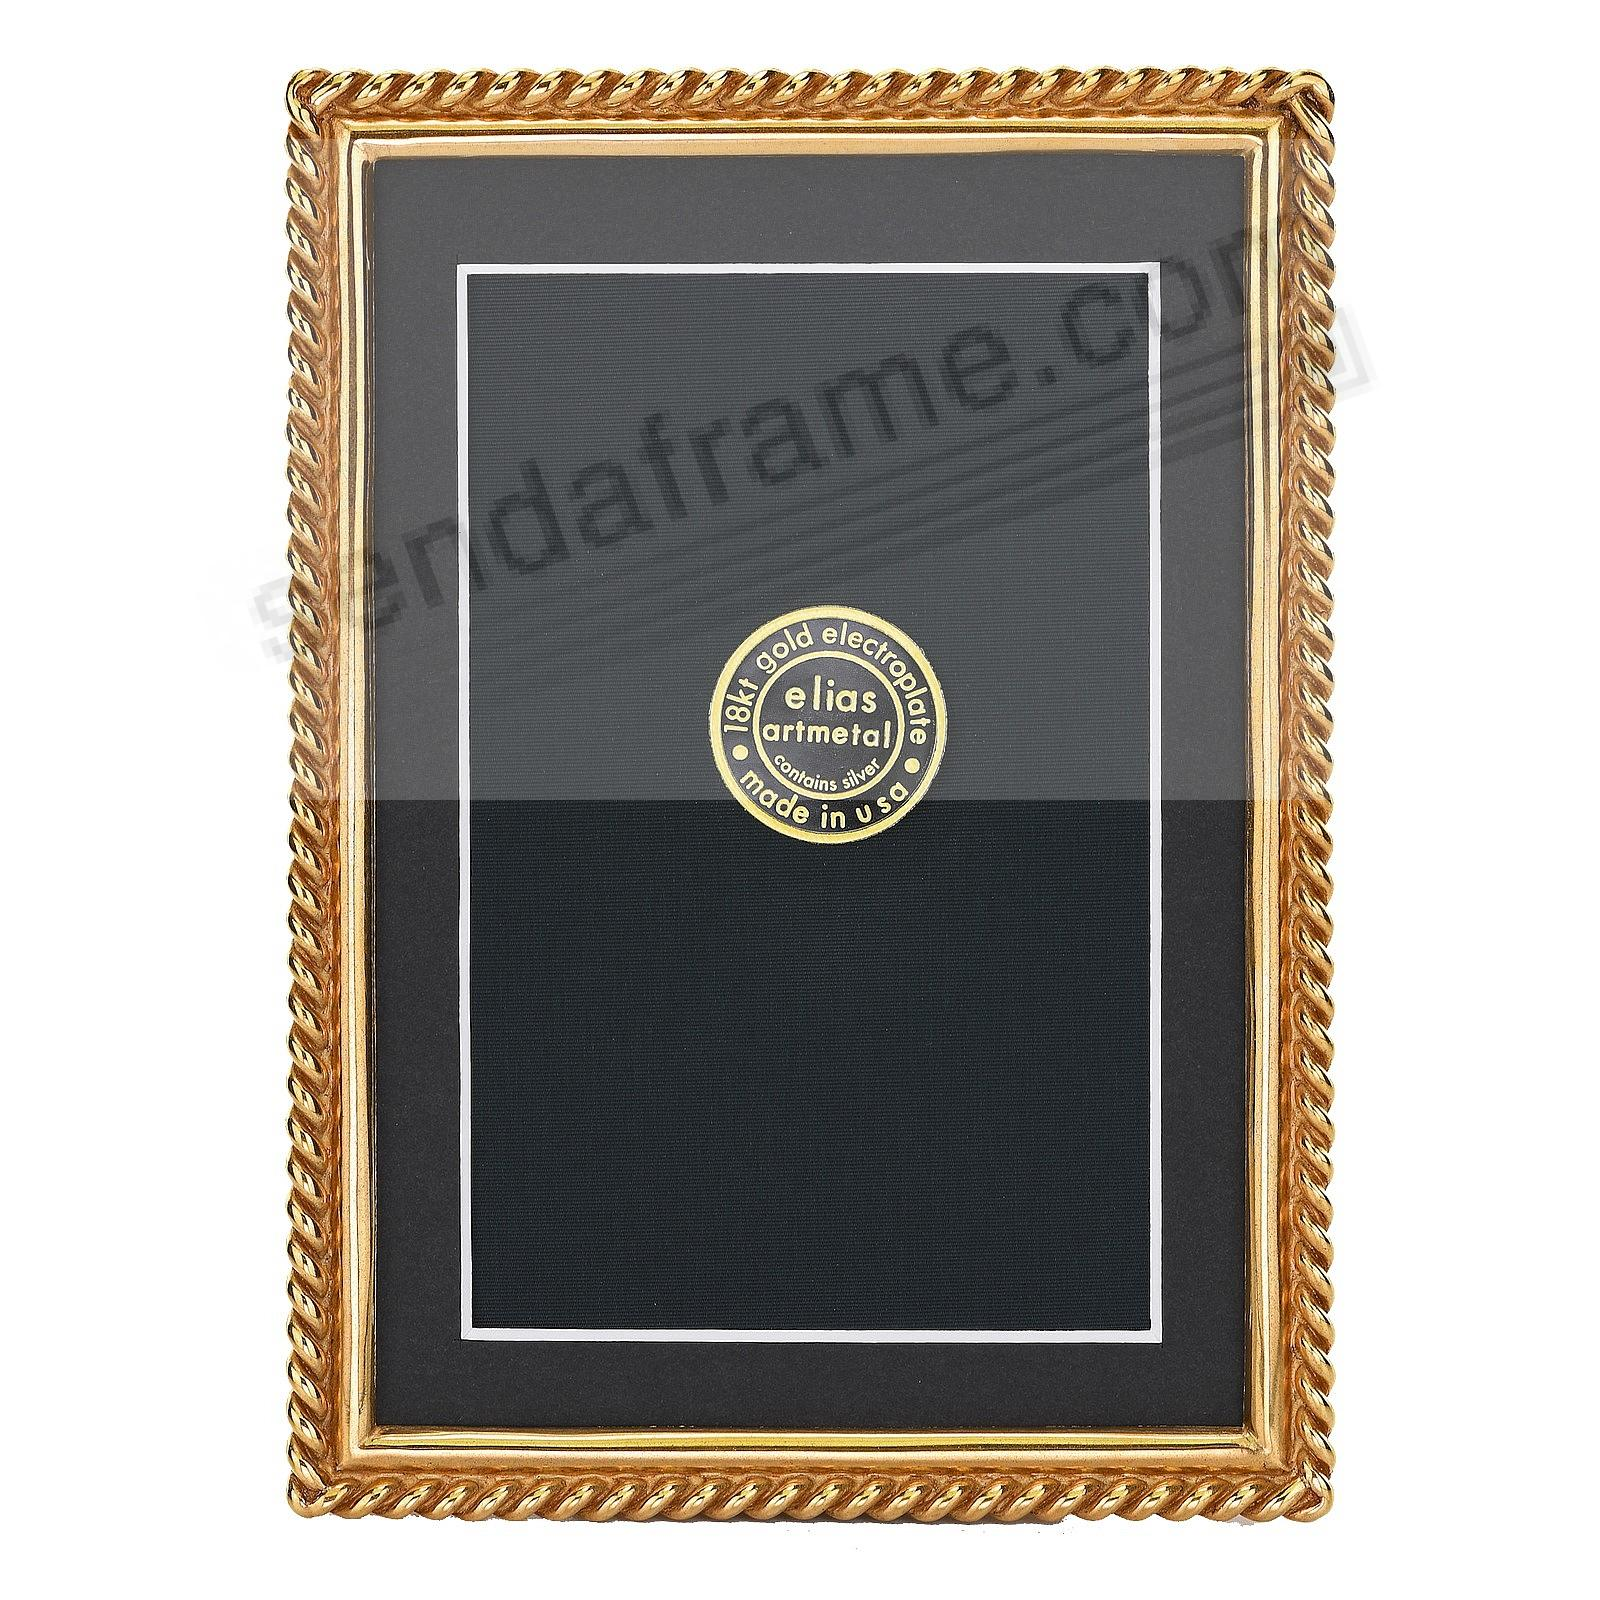 d3d9ffc1dc8 CHAIN 18kt Museum Gold over Pewter frame 5x7 4x6 by Elias Artmetal ...